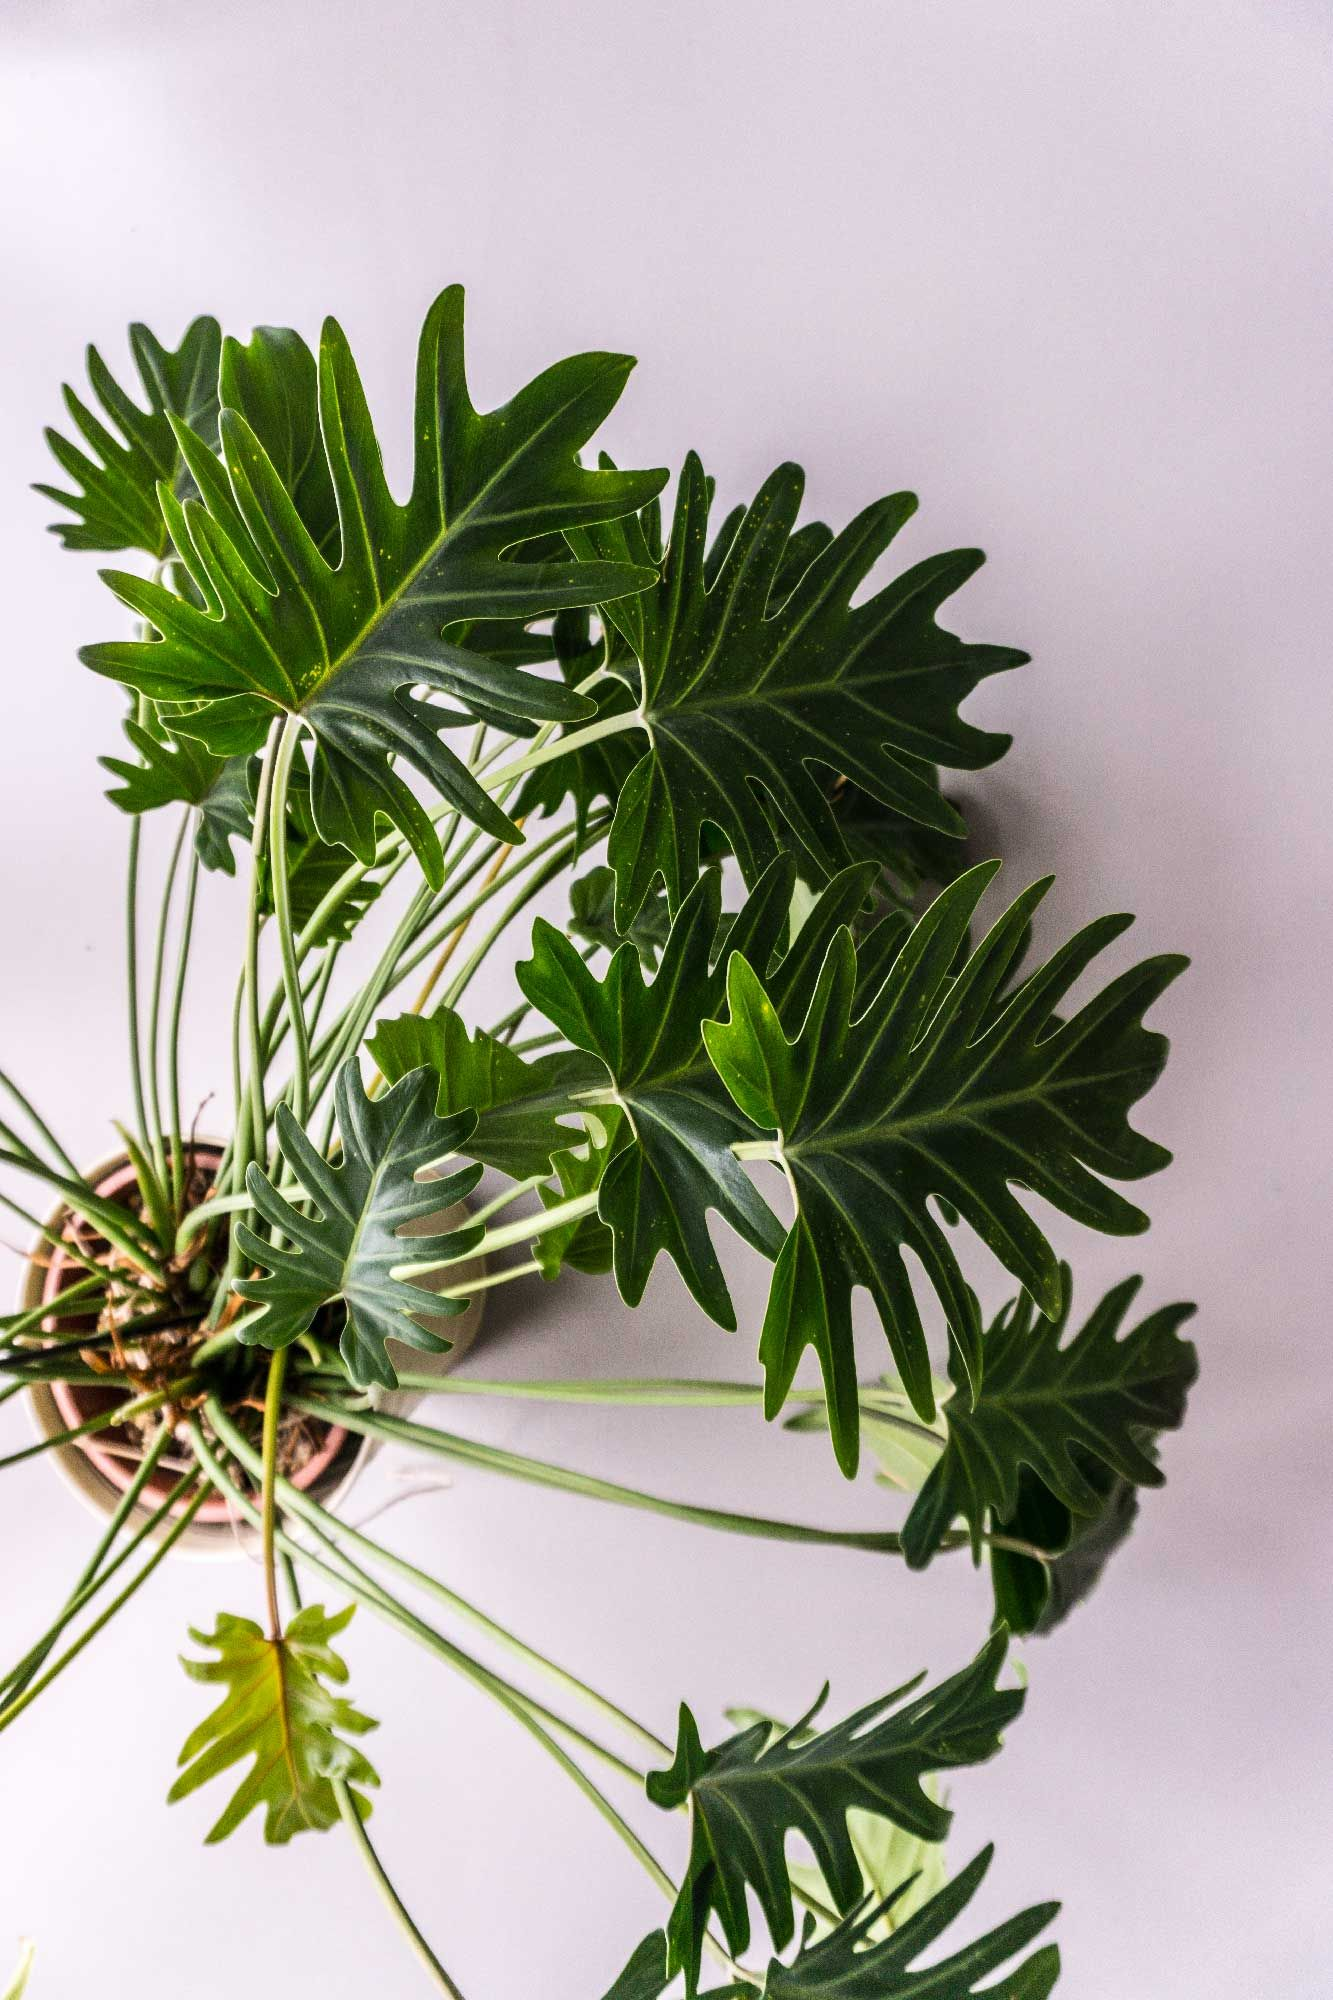 Caring for your philodendron xanadu on philodendron